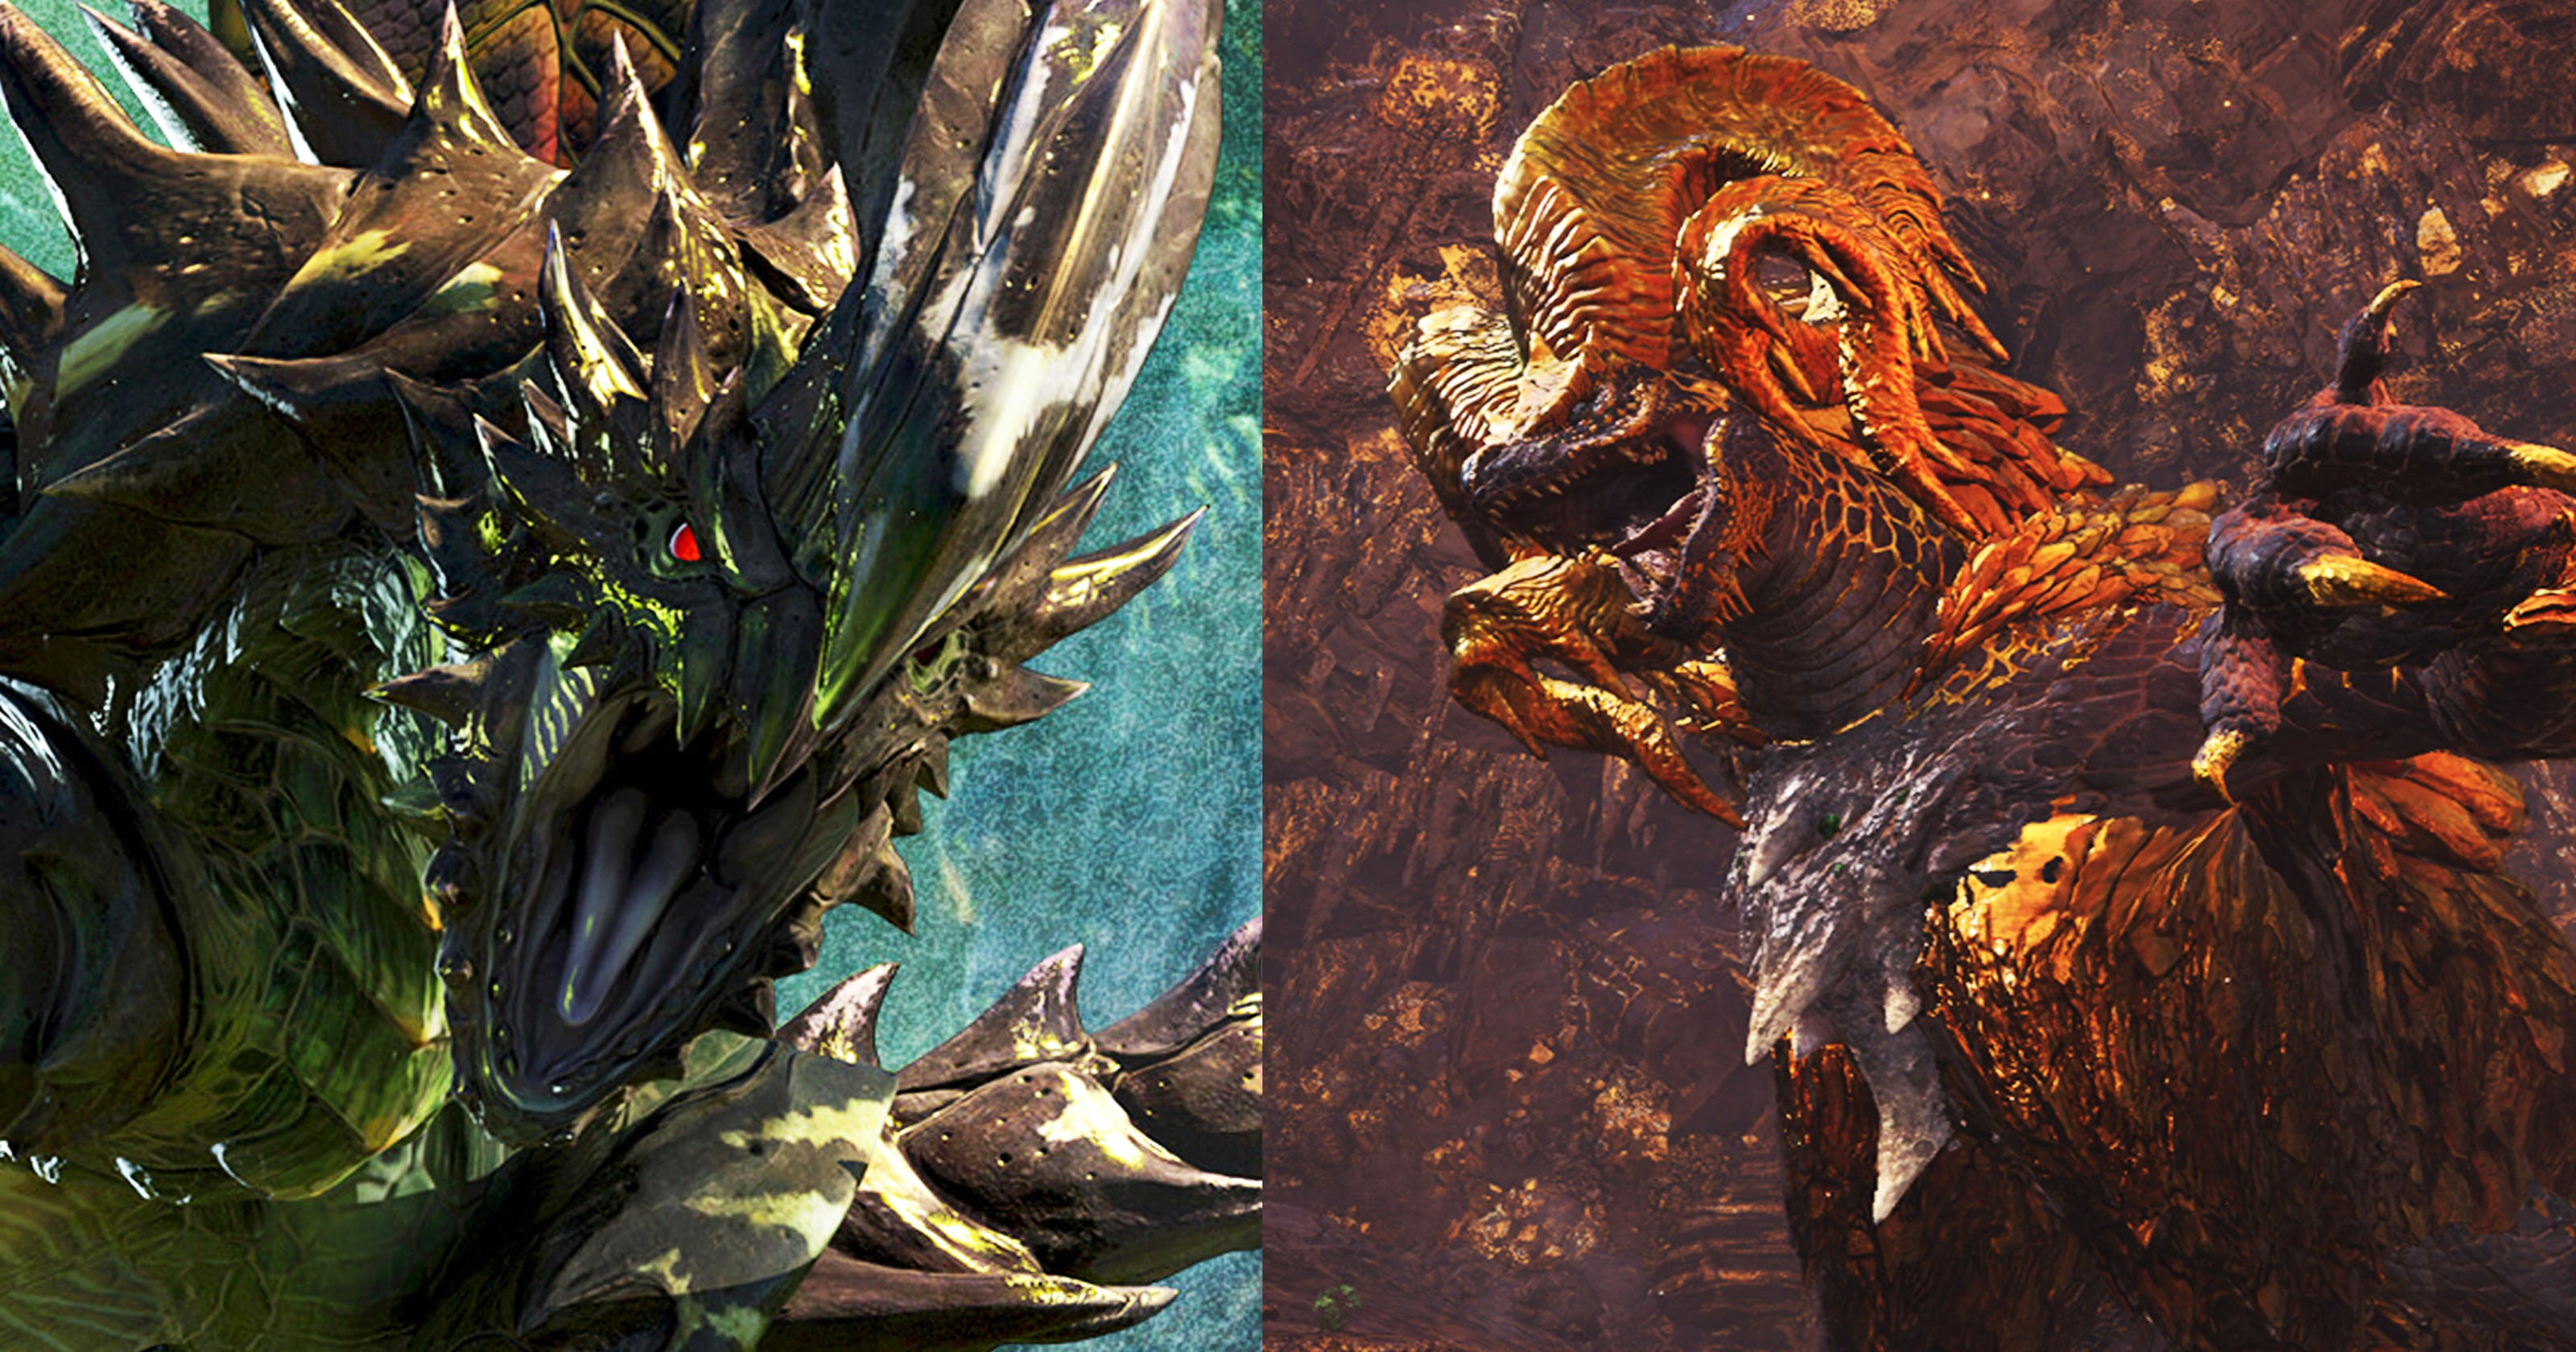 21 Things to Know When Making Switch from Monster Hunter World to